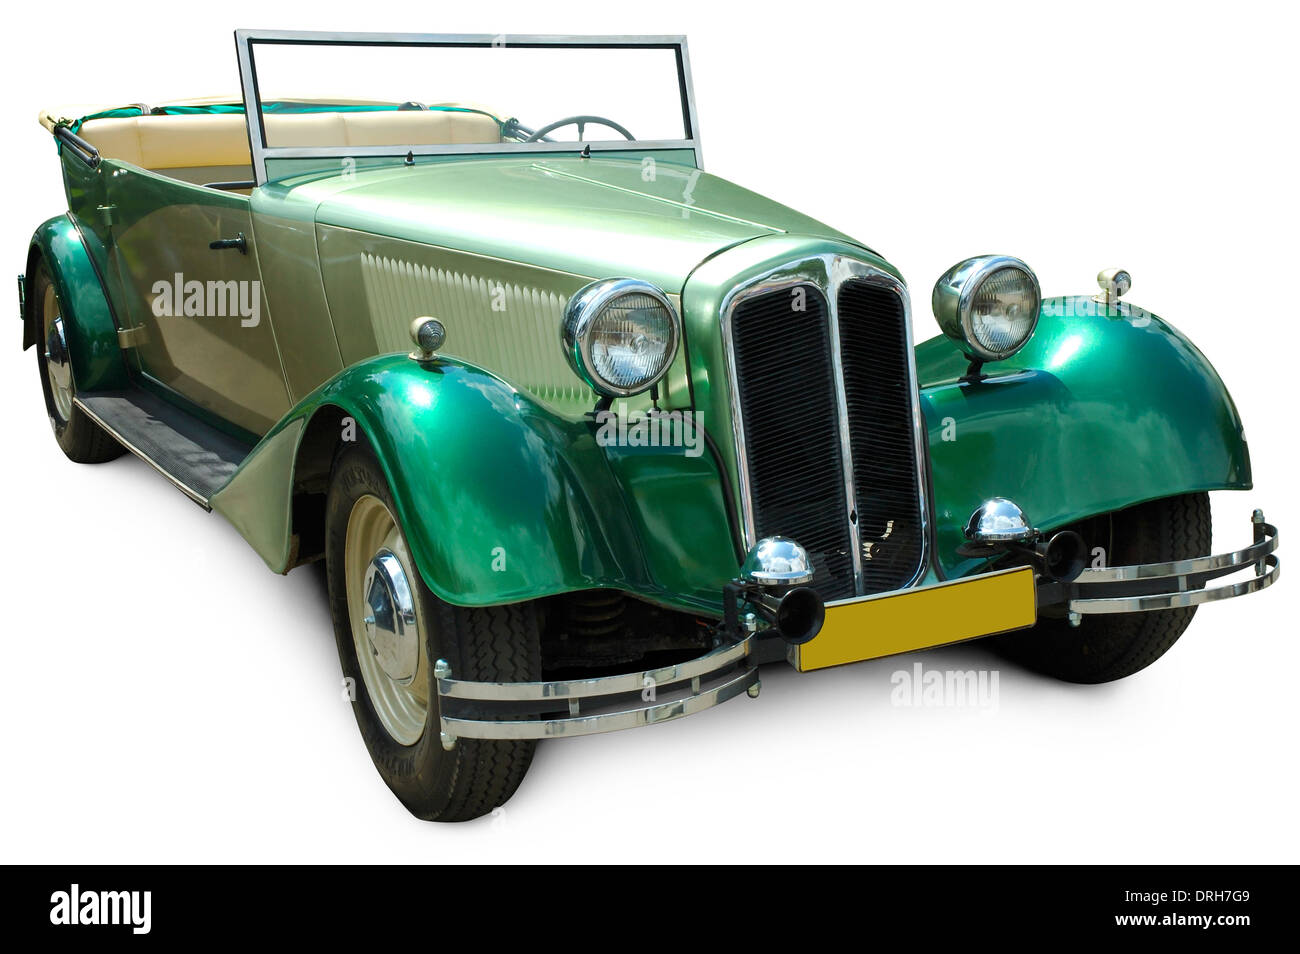 Classic green convertible vintage car isolated on white background with clipping path - Stock Image